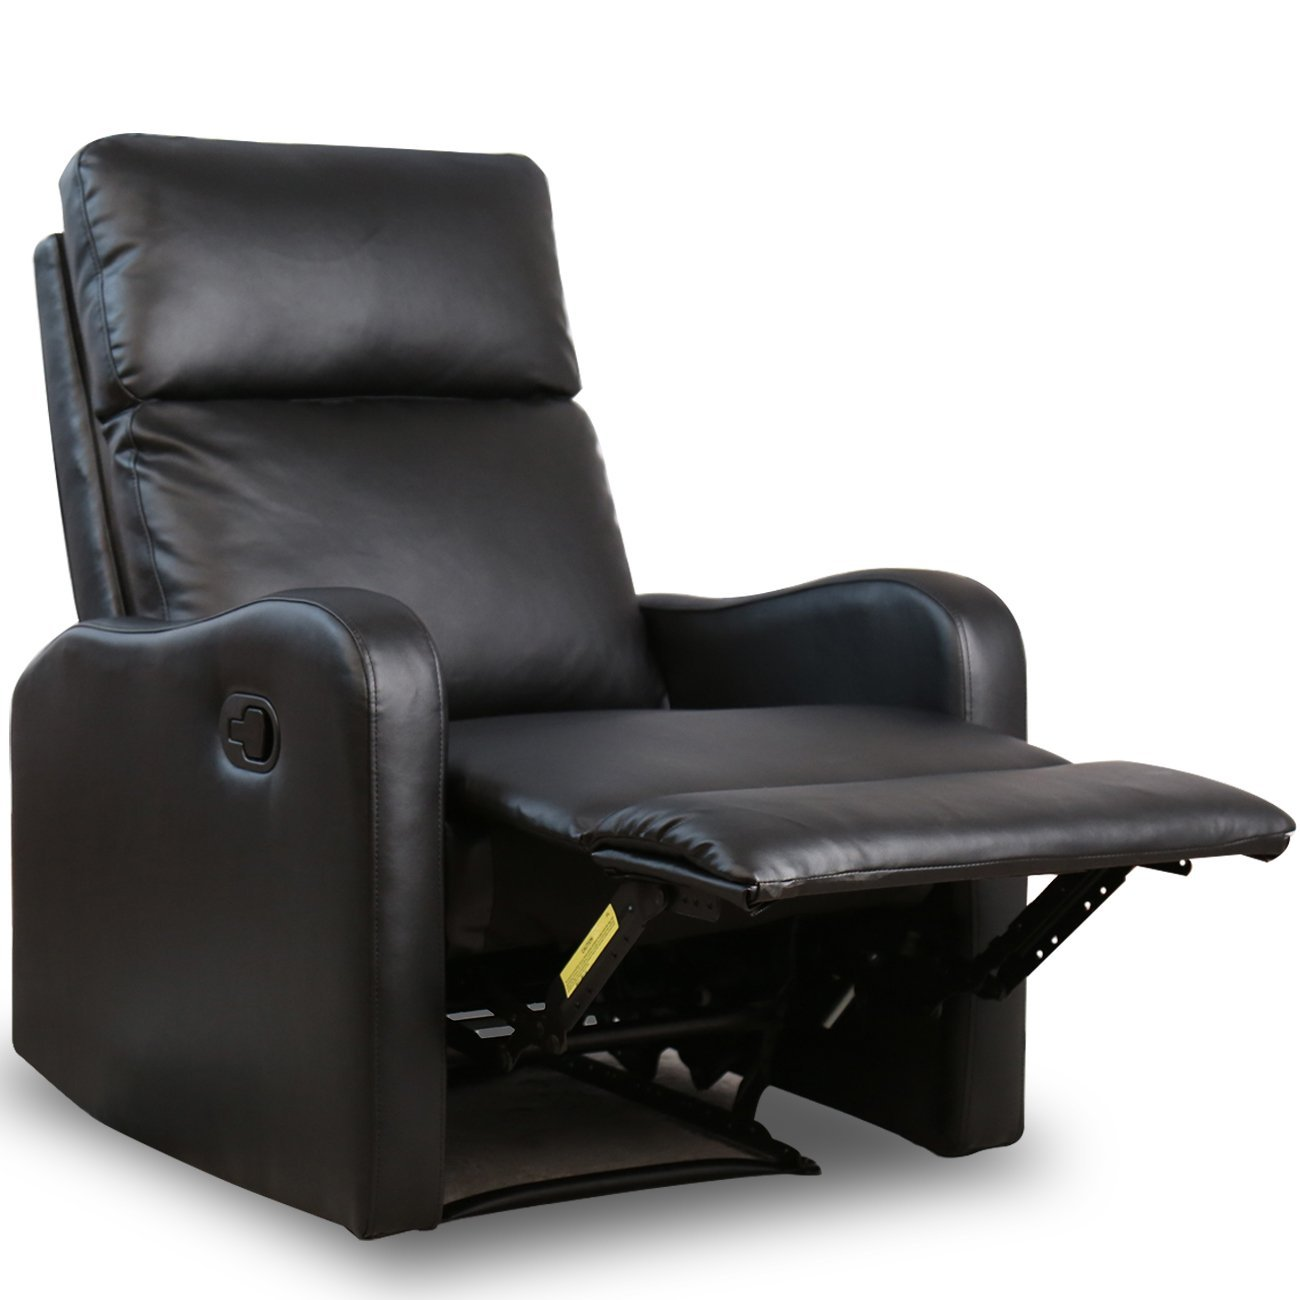 Modern Leather Chairs Bonzy Recliner Chair Black Leather Chairs For Modern Living Room Durable Framework